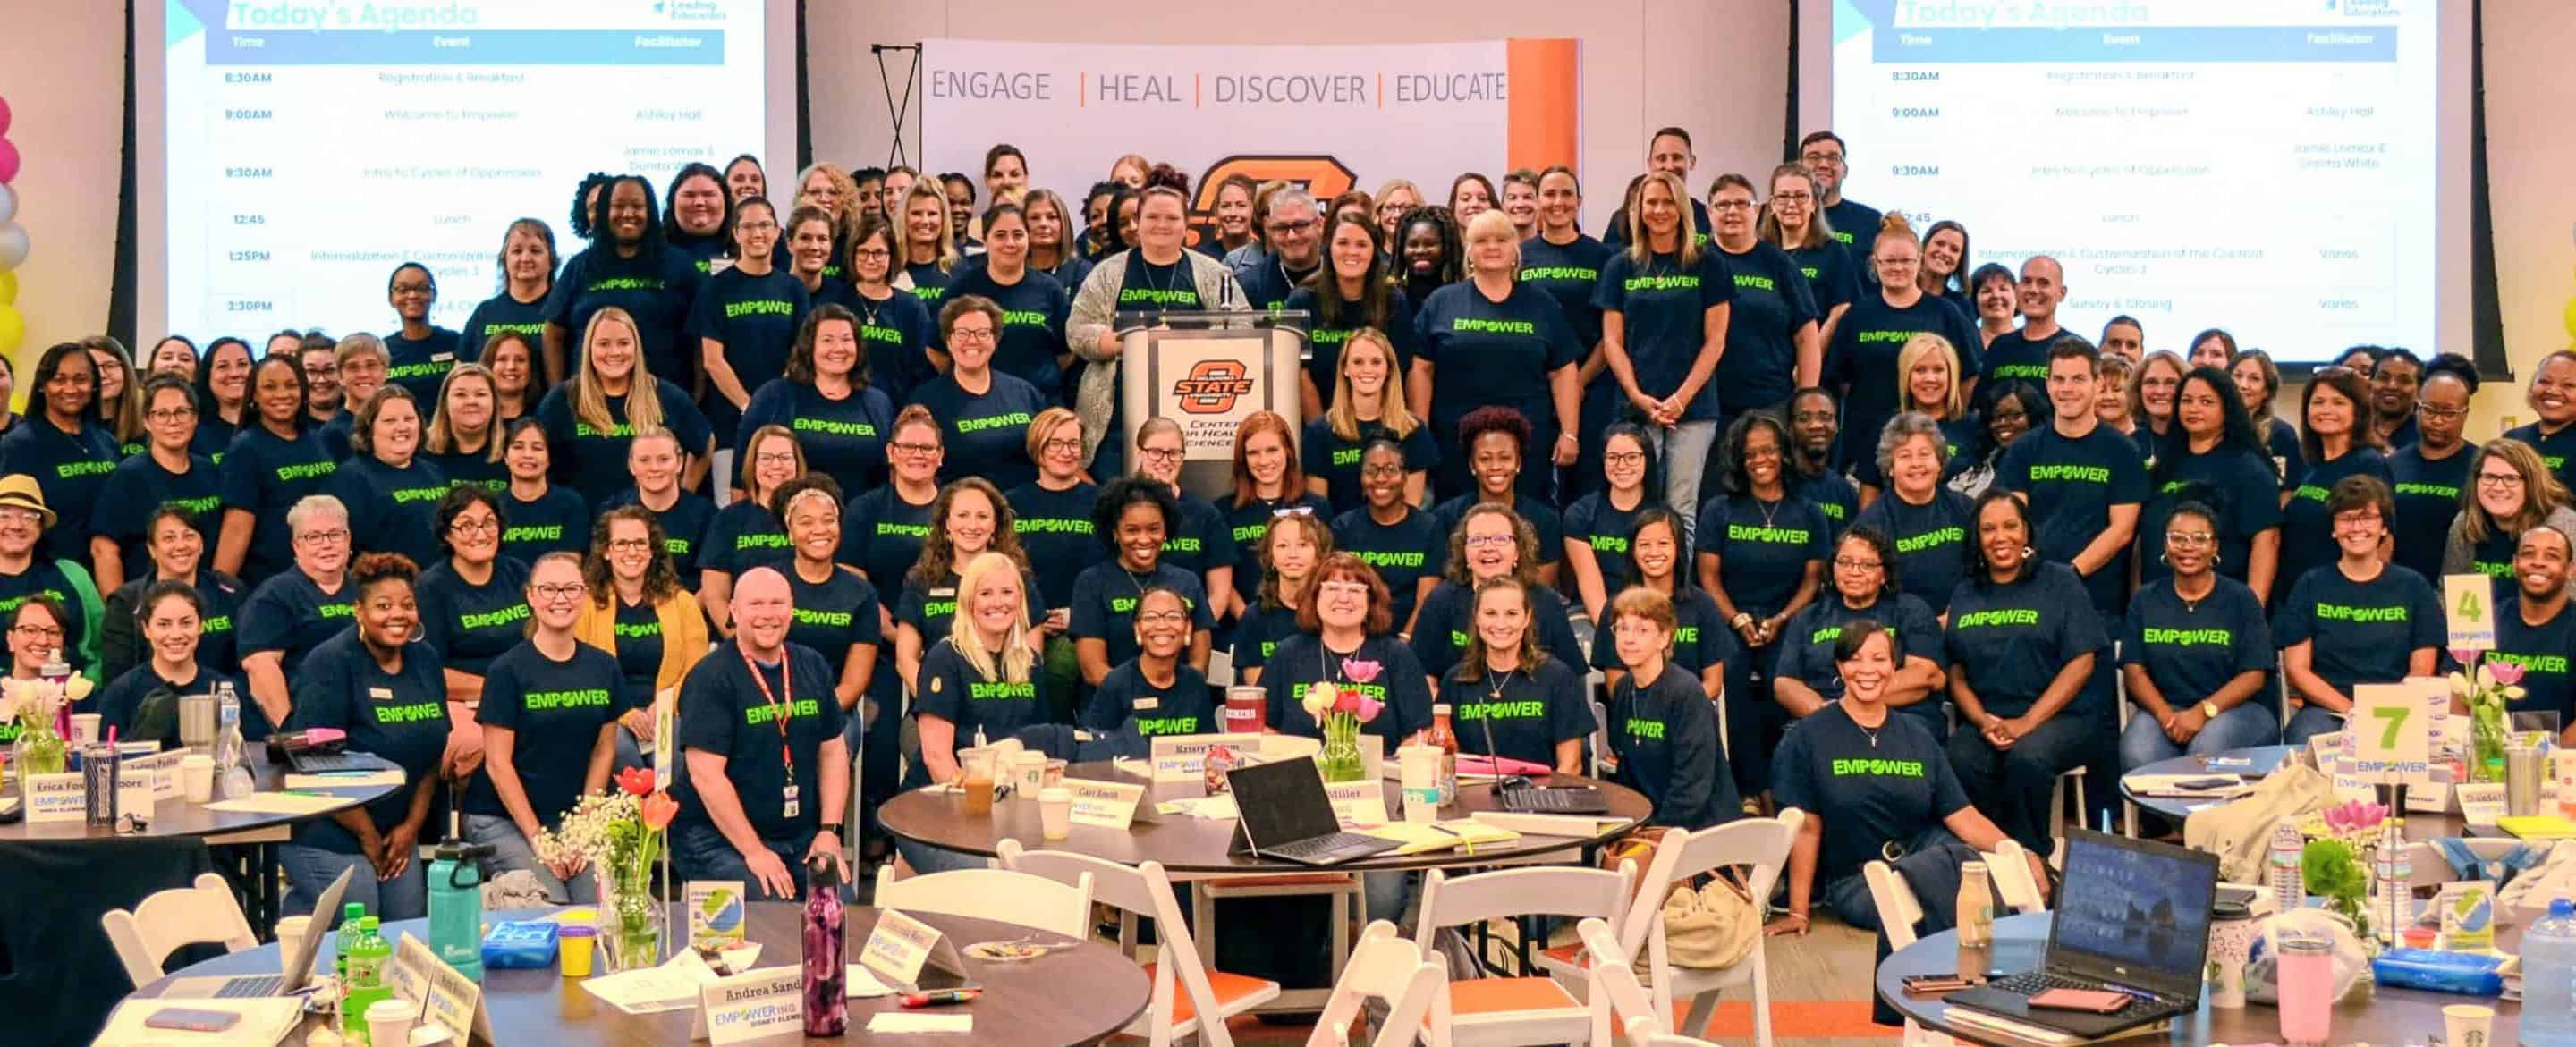 Group of educators from a 2019 Tulsa Empower session